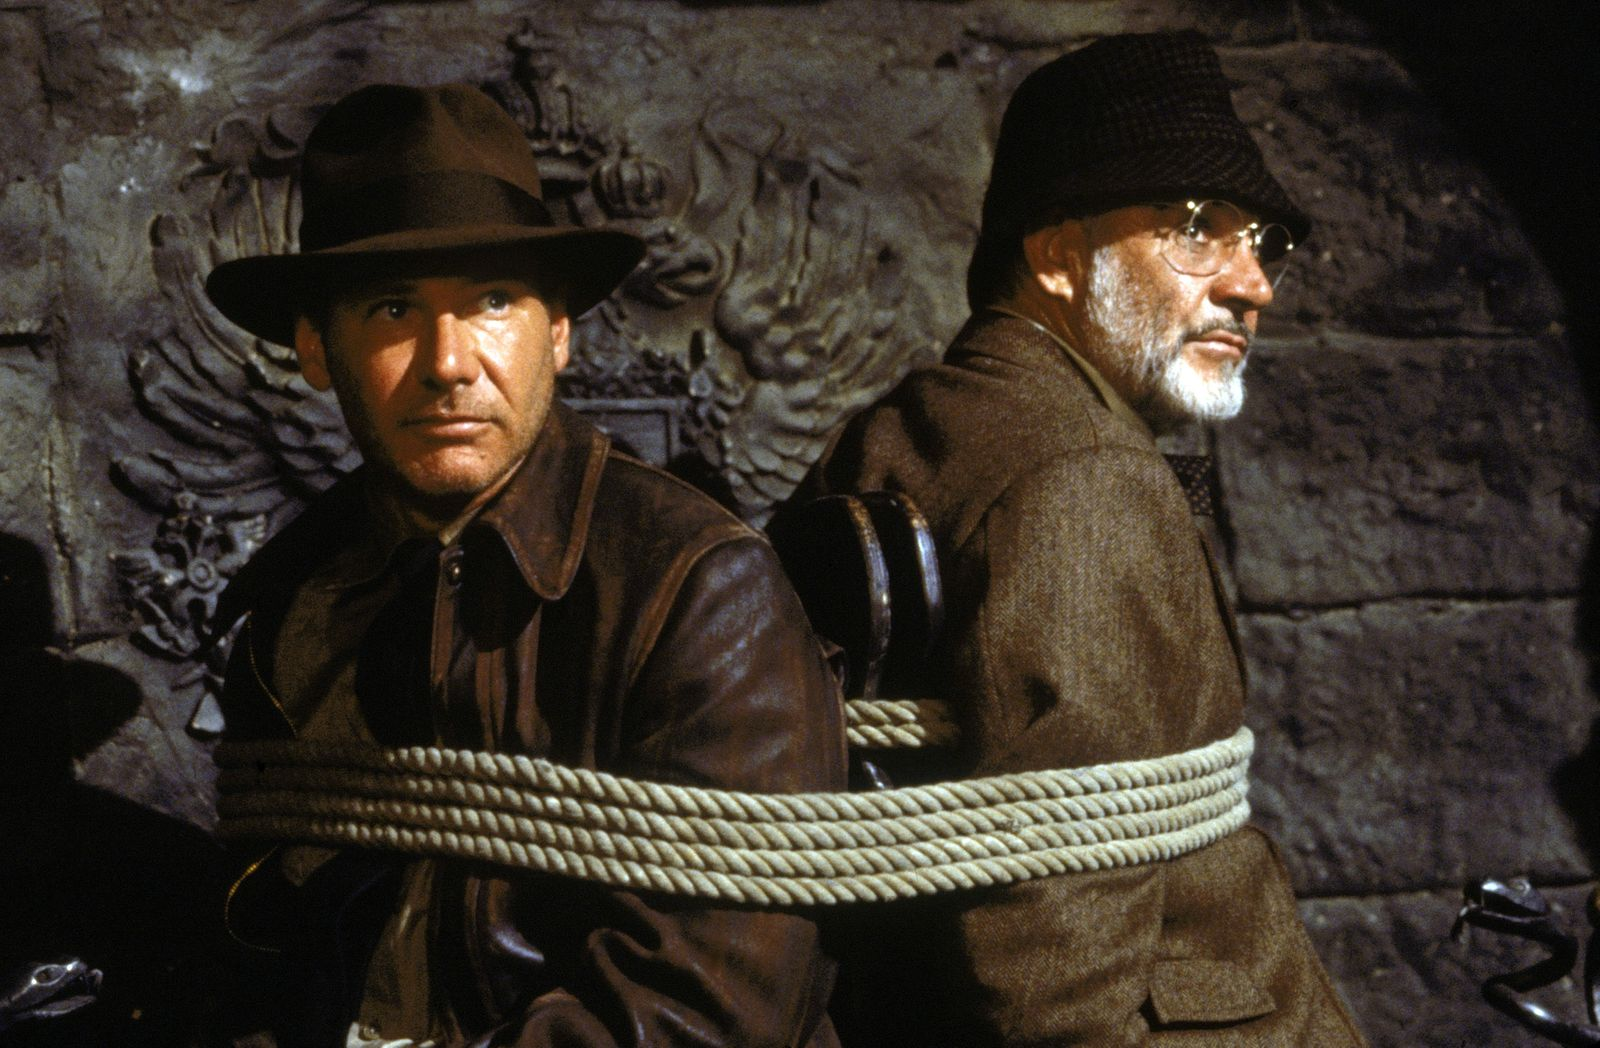 INDIANA JONES AND THE LAST CRUSADE, from left: Harrison Ford as Indiana Jones, Sean Connery 1989. ©P